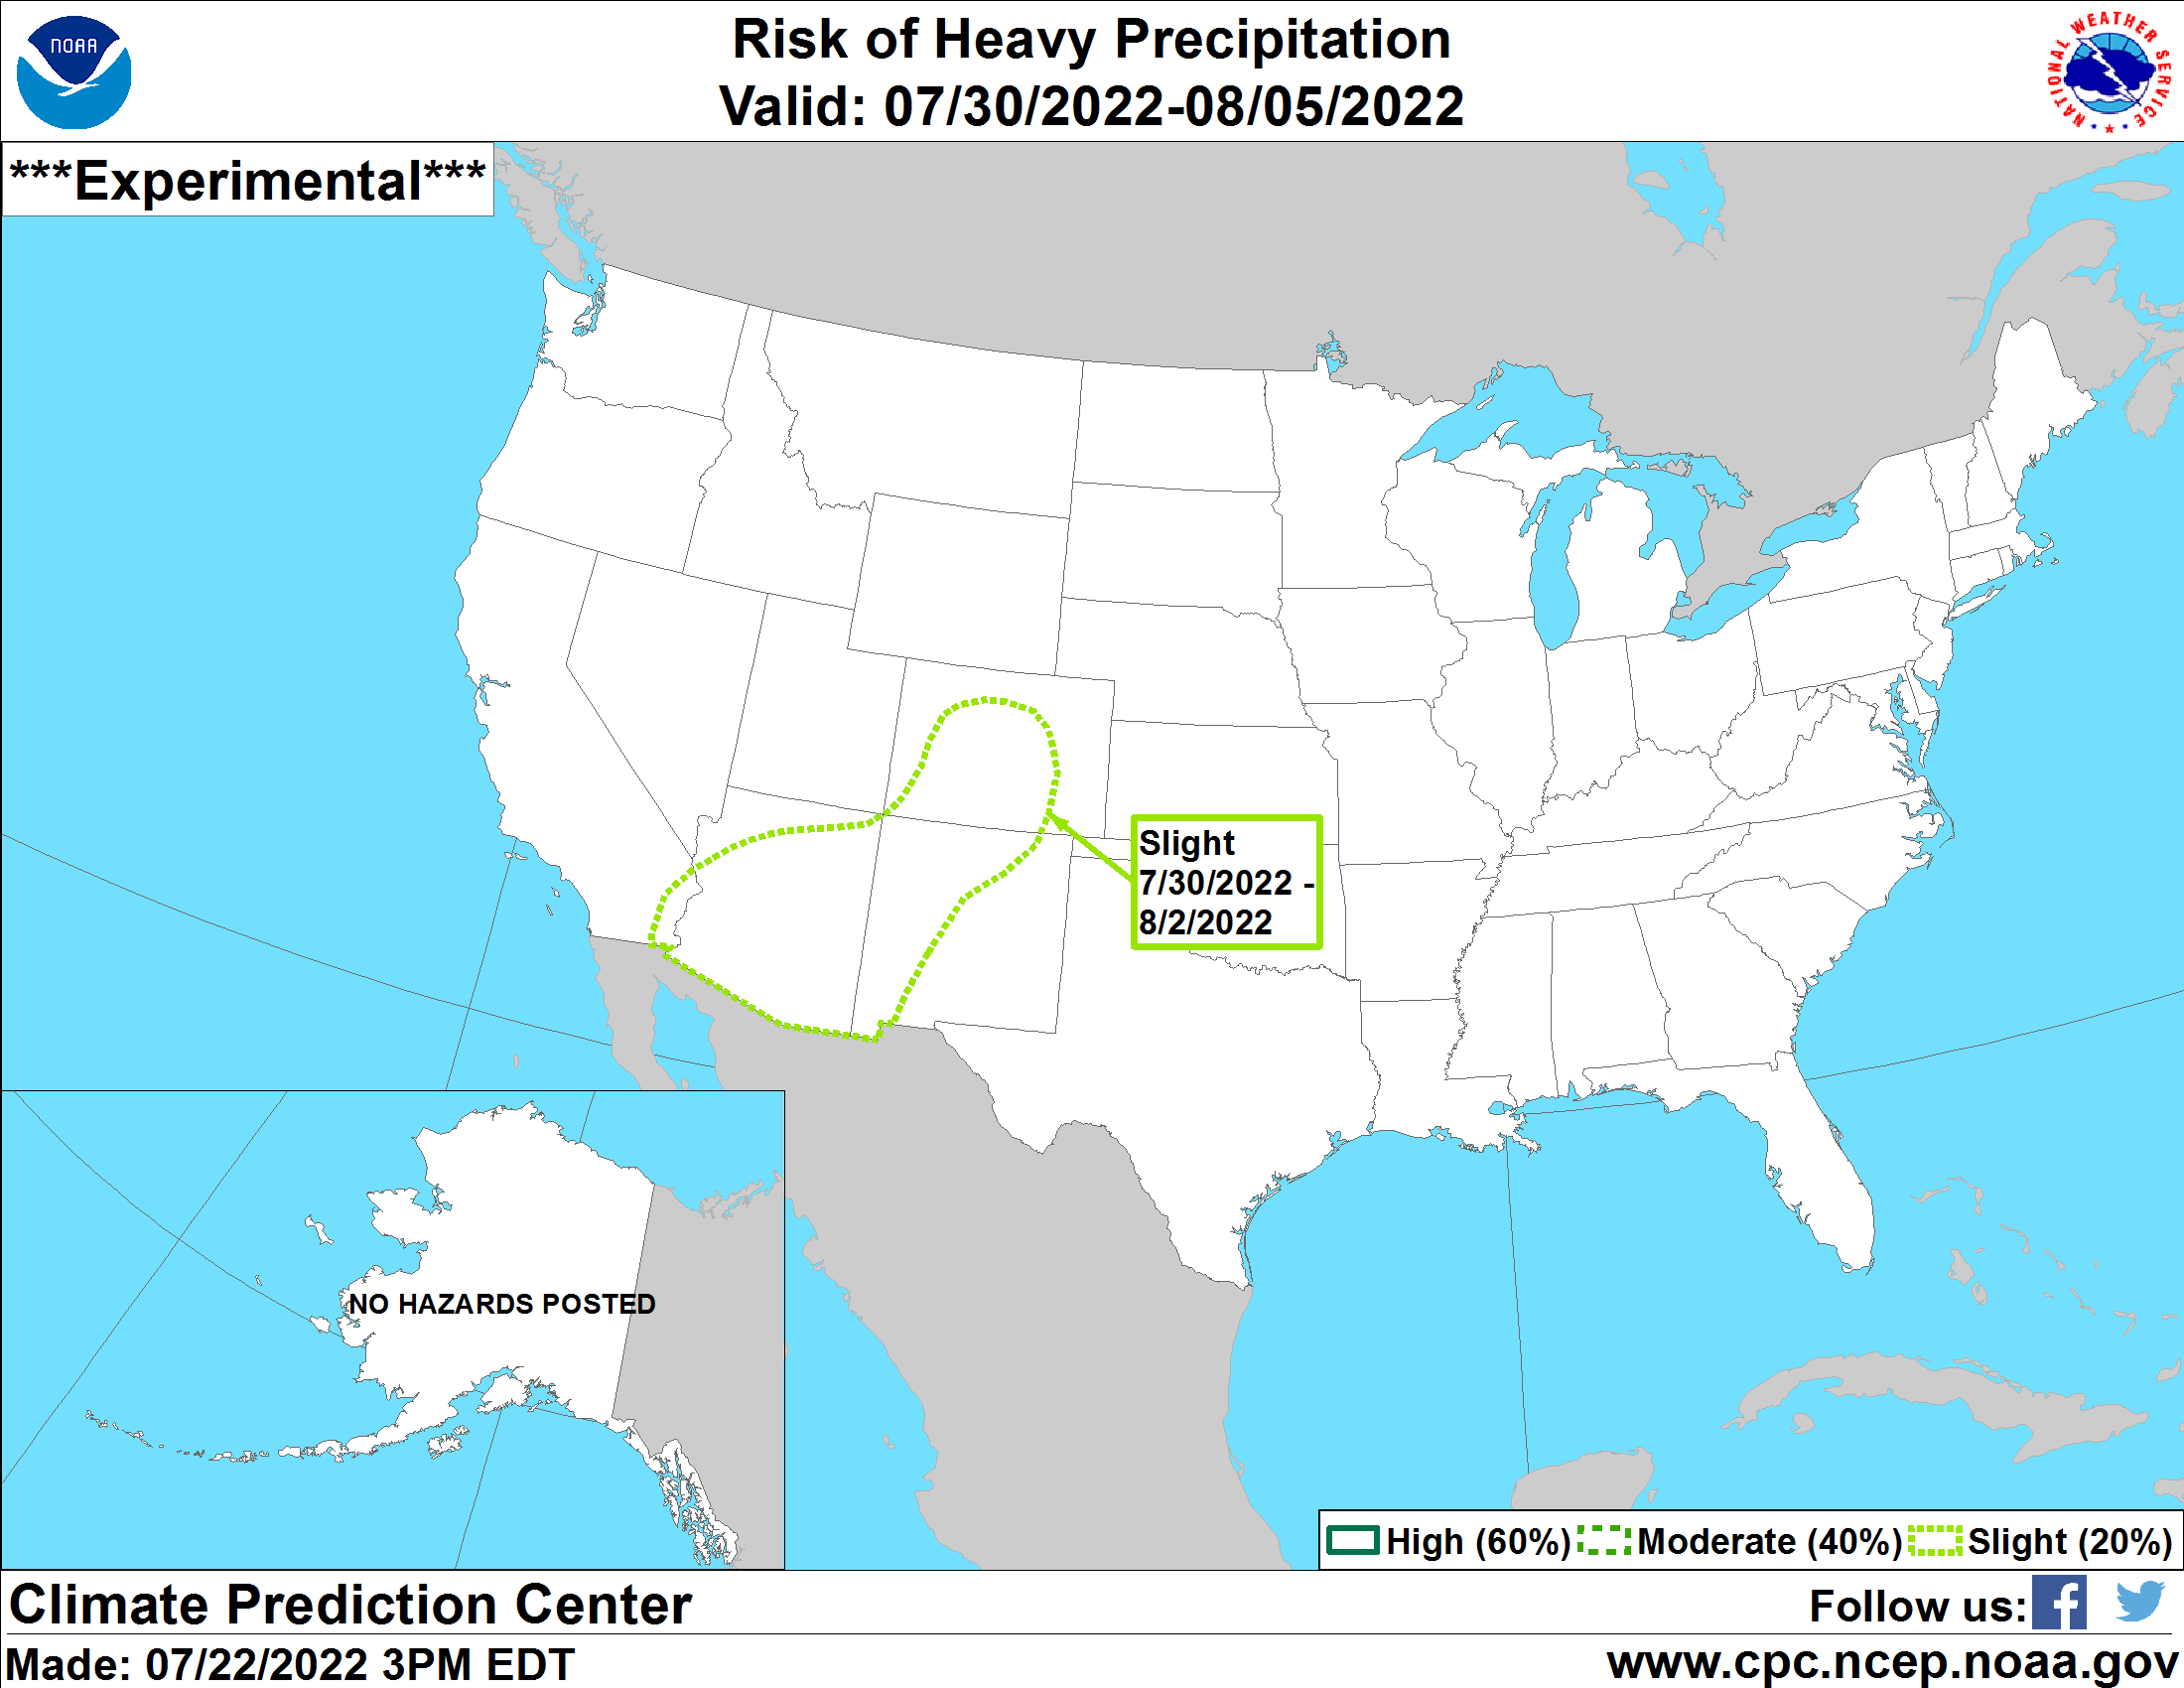 U.S. 7 Day Precipitation Outlook Map